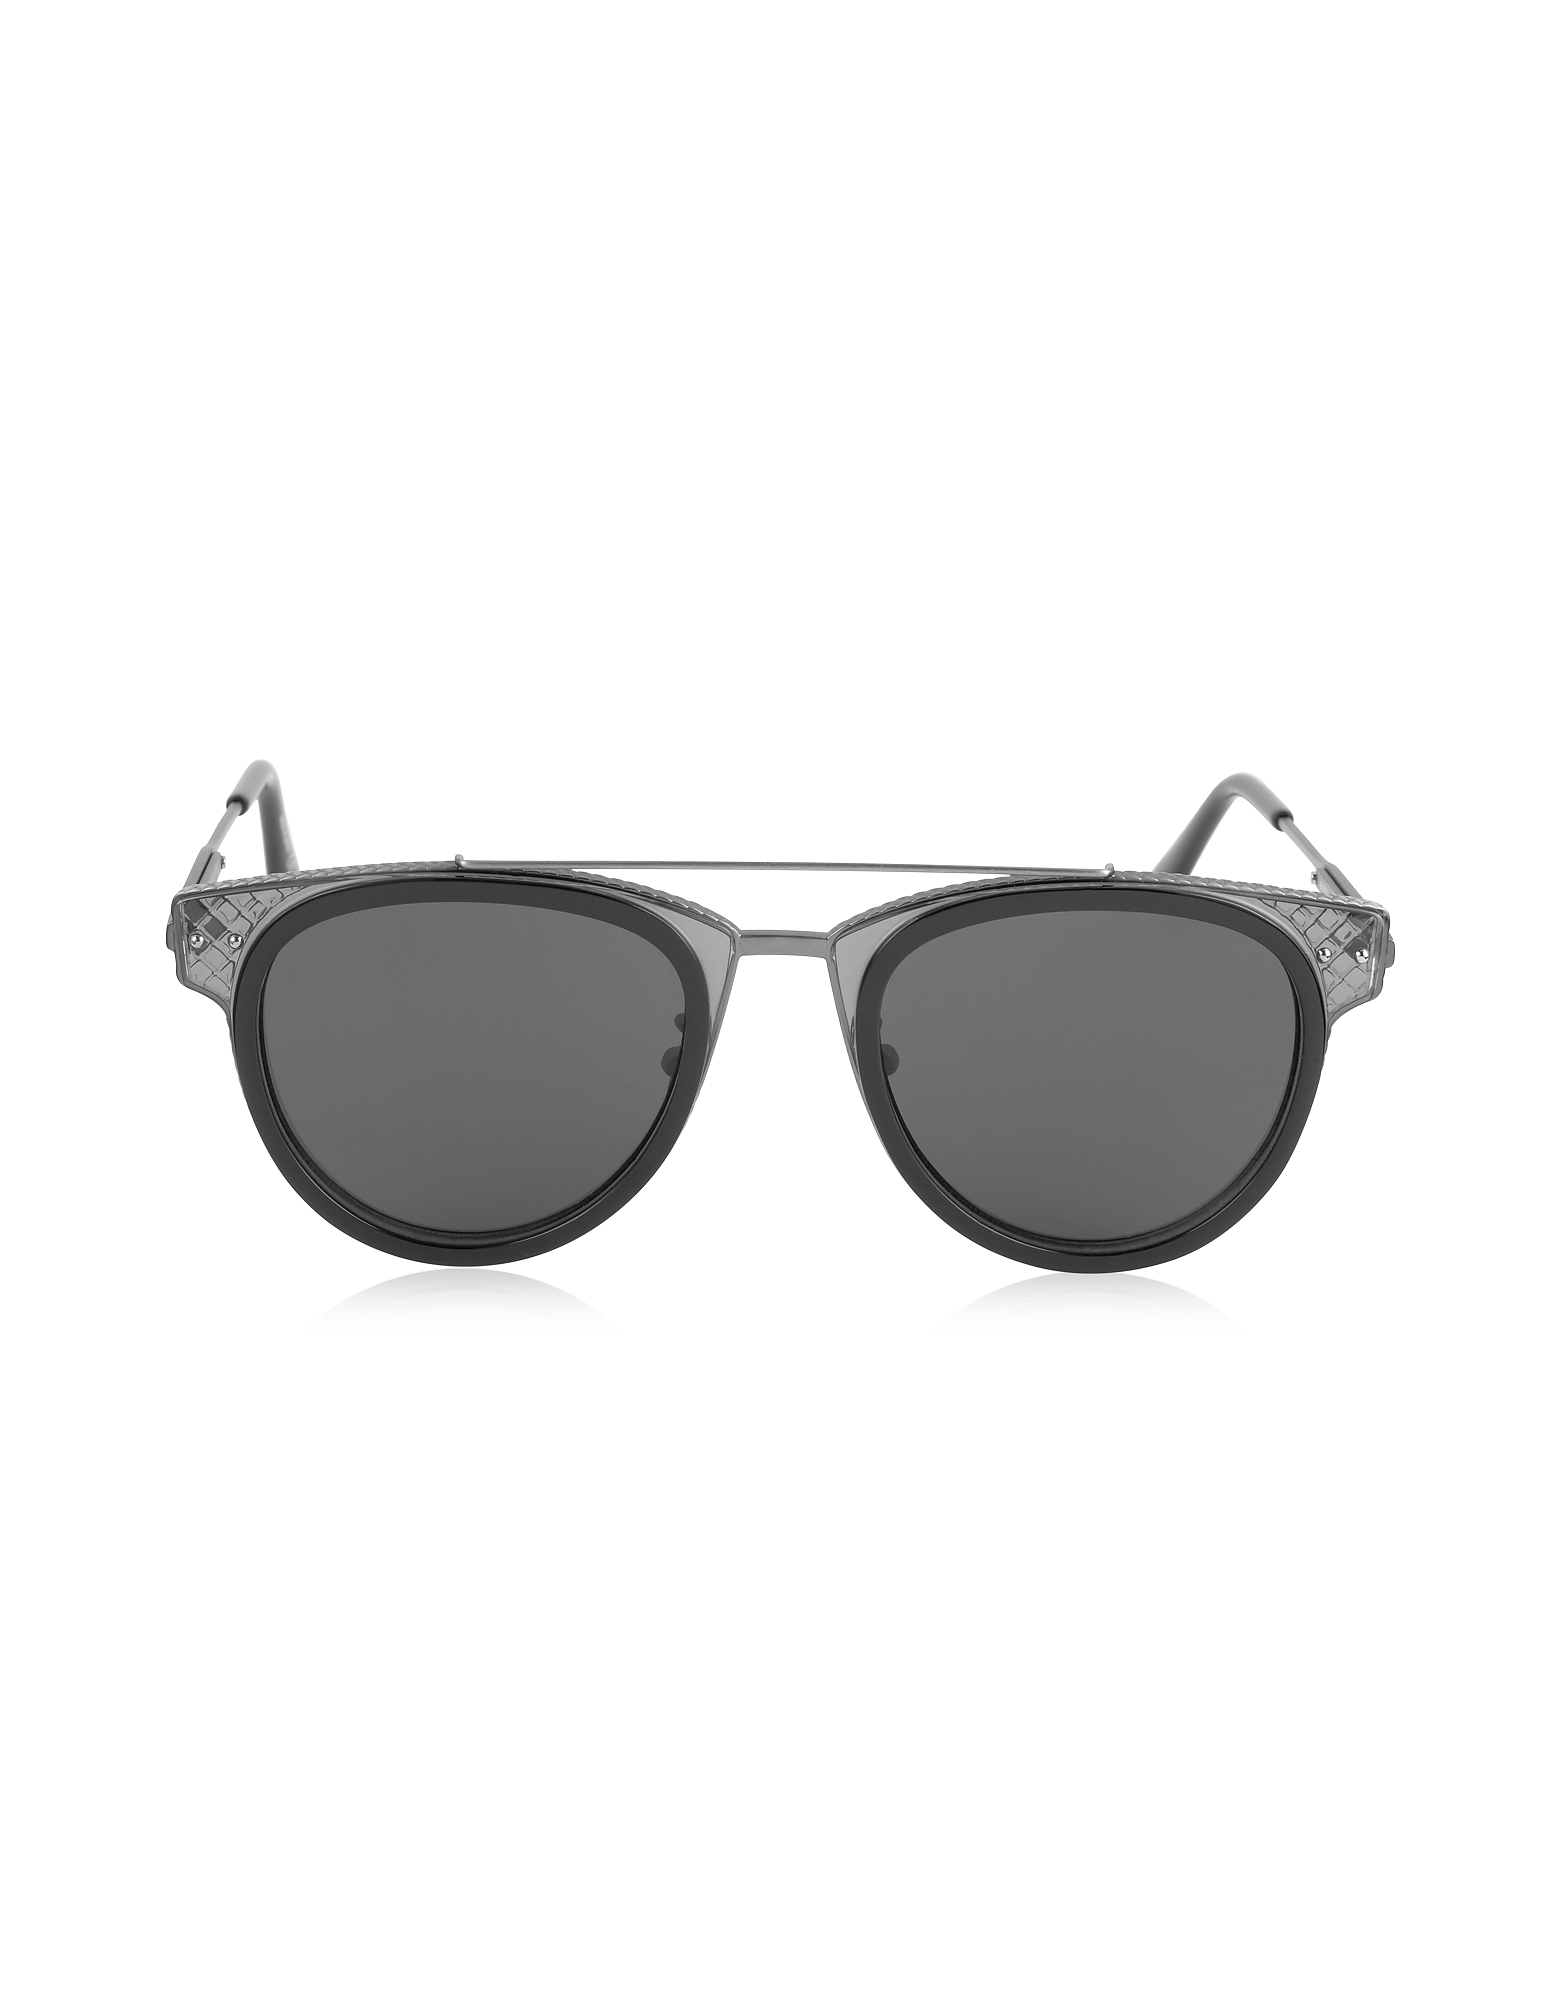 Bottega Veneta Sunglasses, BV0123S Round Metal and Acetate Unisex Sunglasses